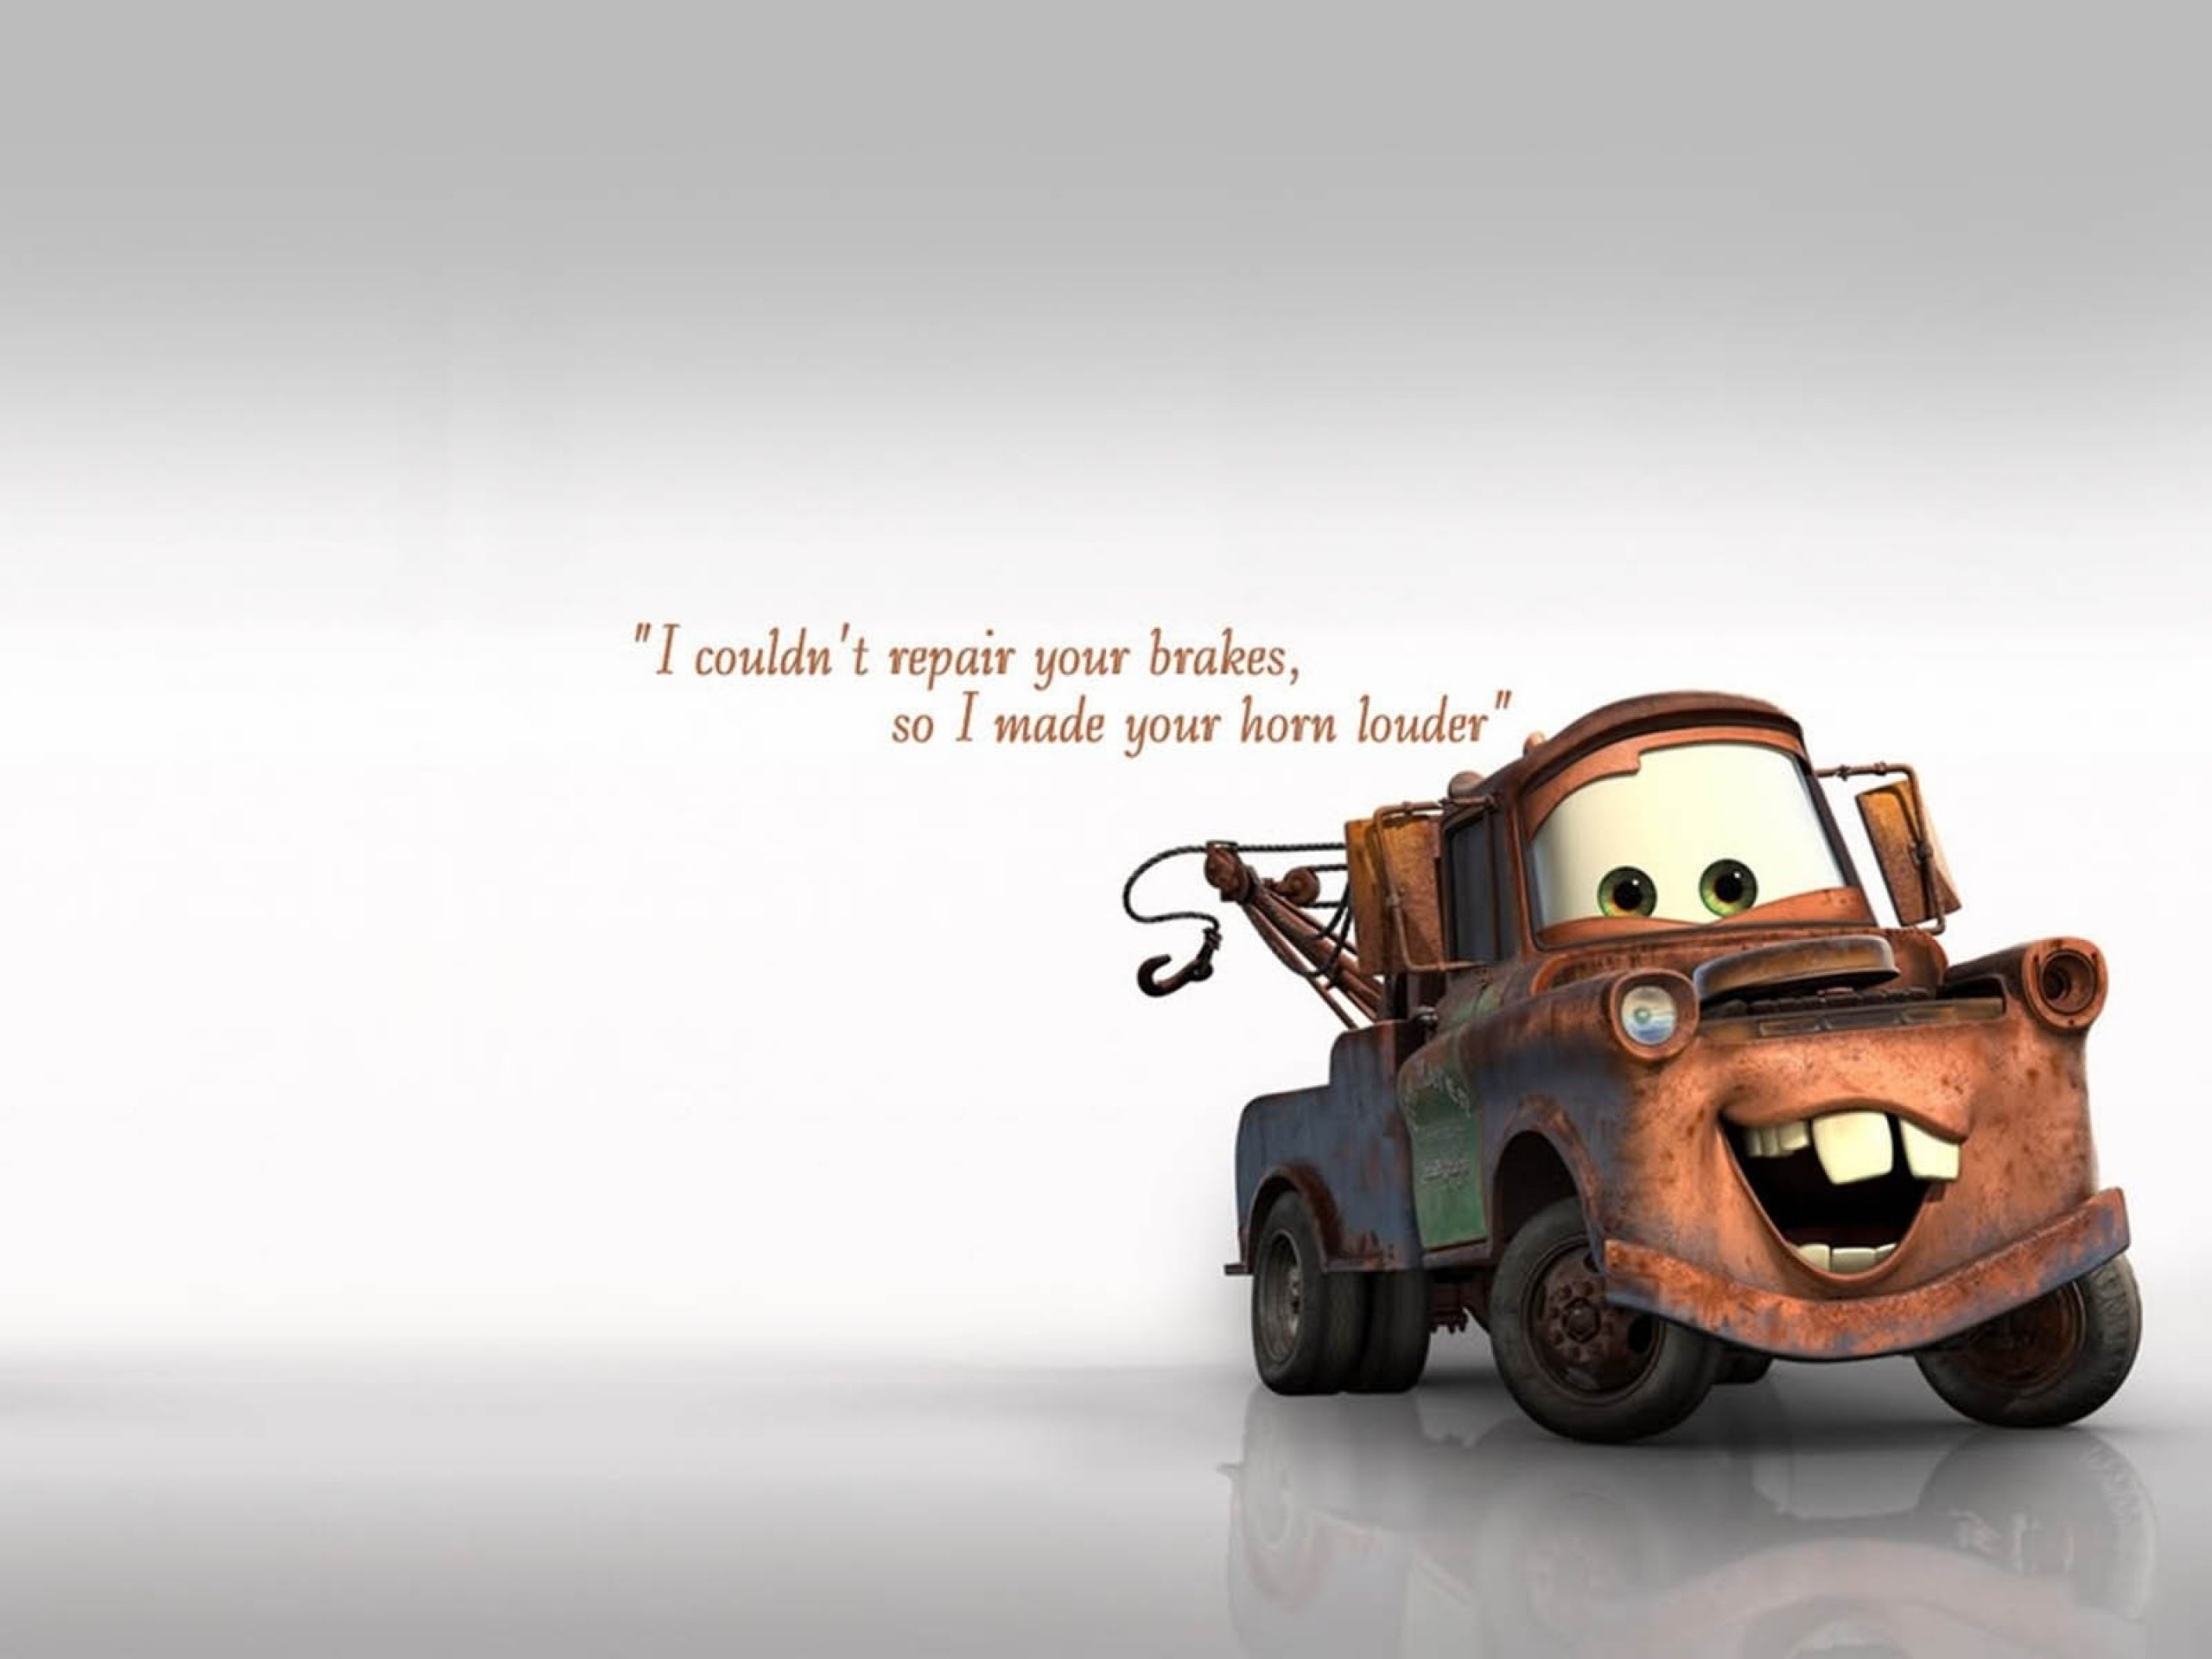 Disneys Cars Quote By Mater Hd Wallpaper Background Image